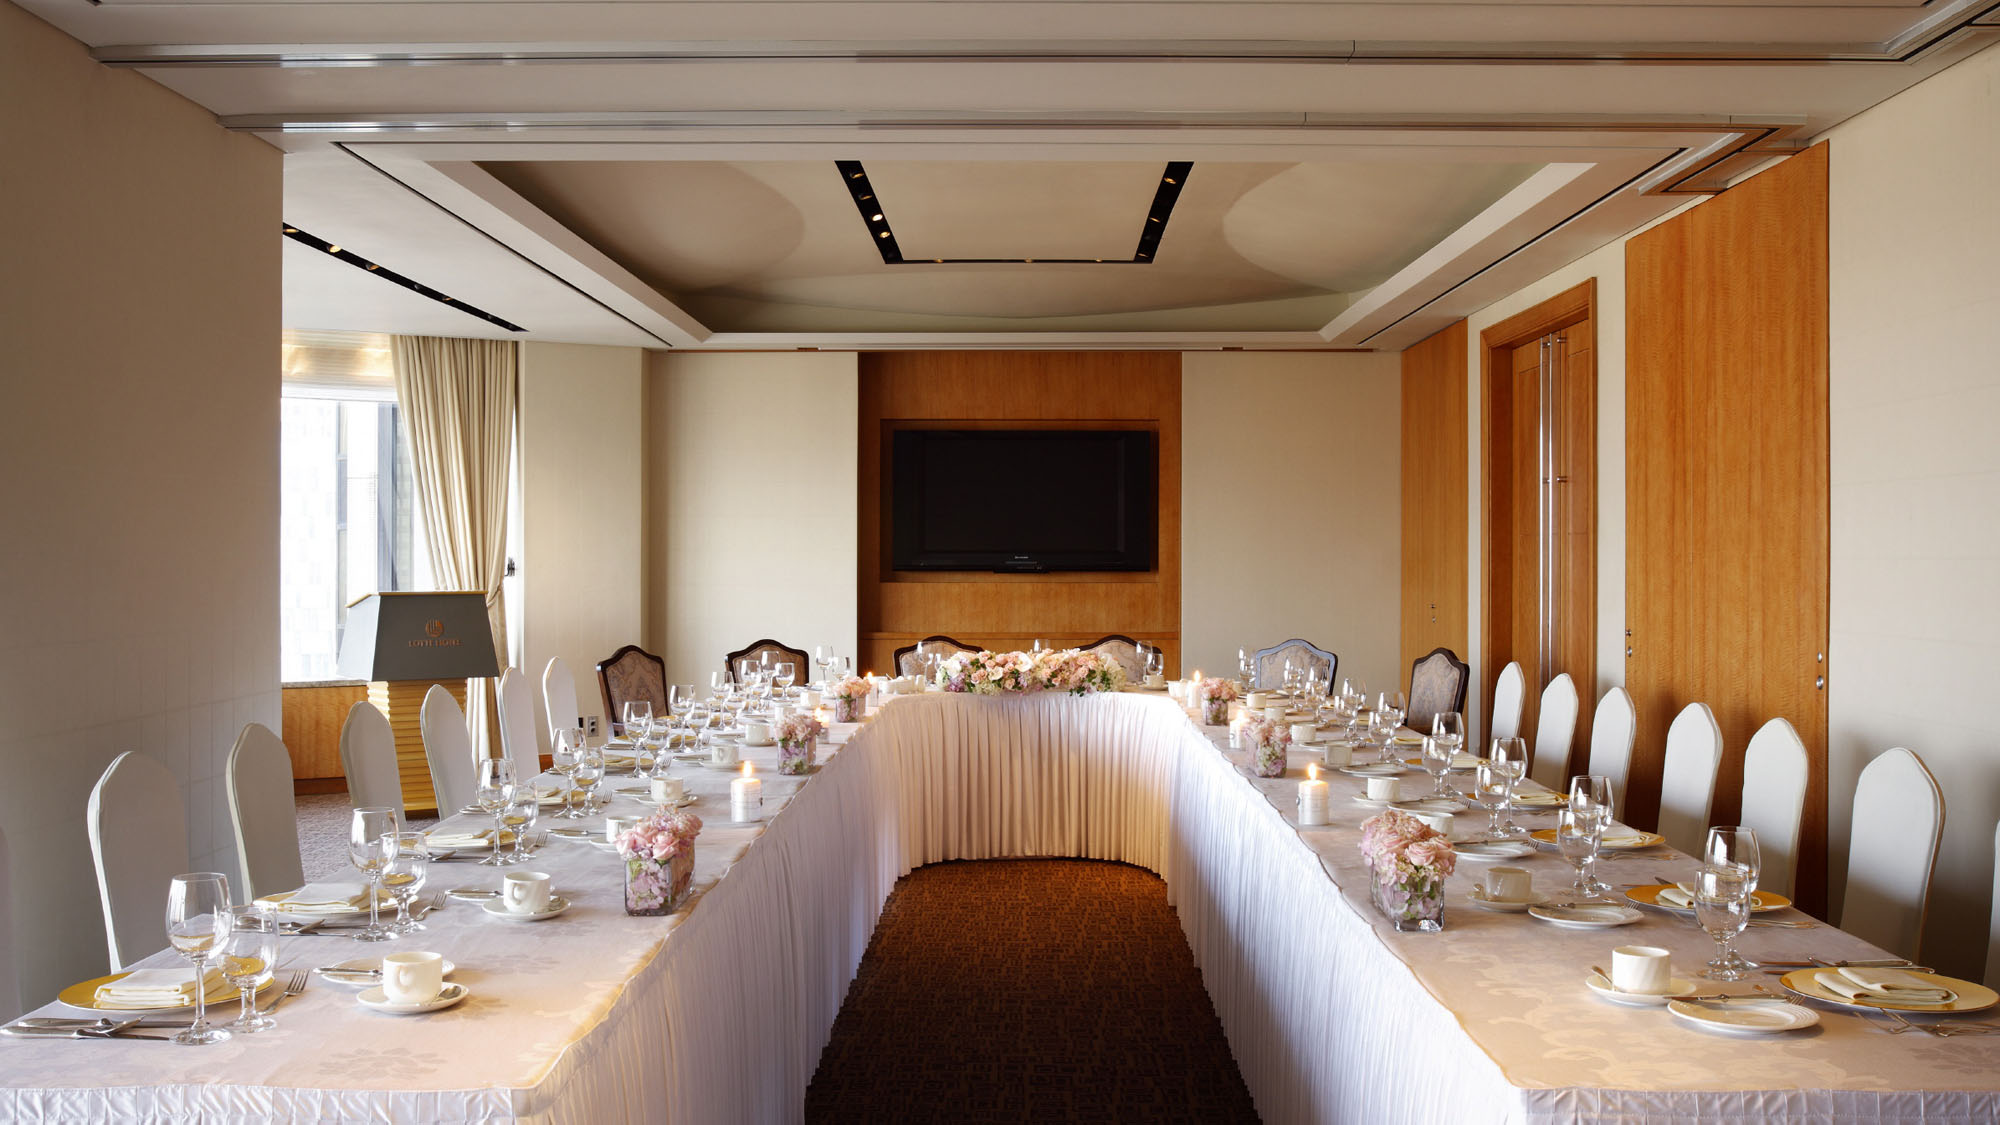 Lotte Hotel Seoul-Wedding&Conference-Conference-Small Size Banquets